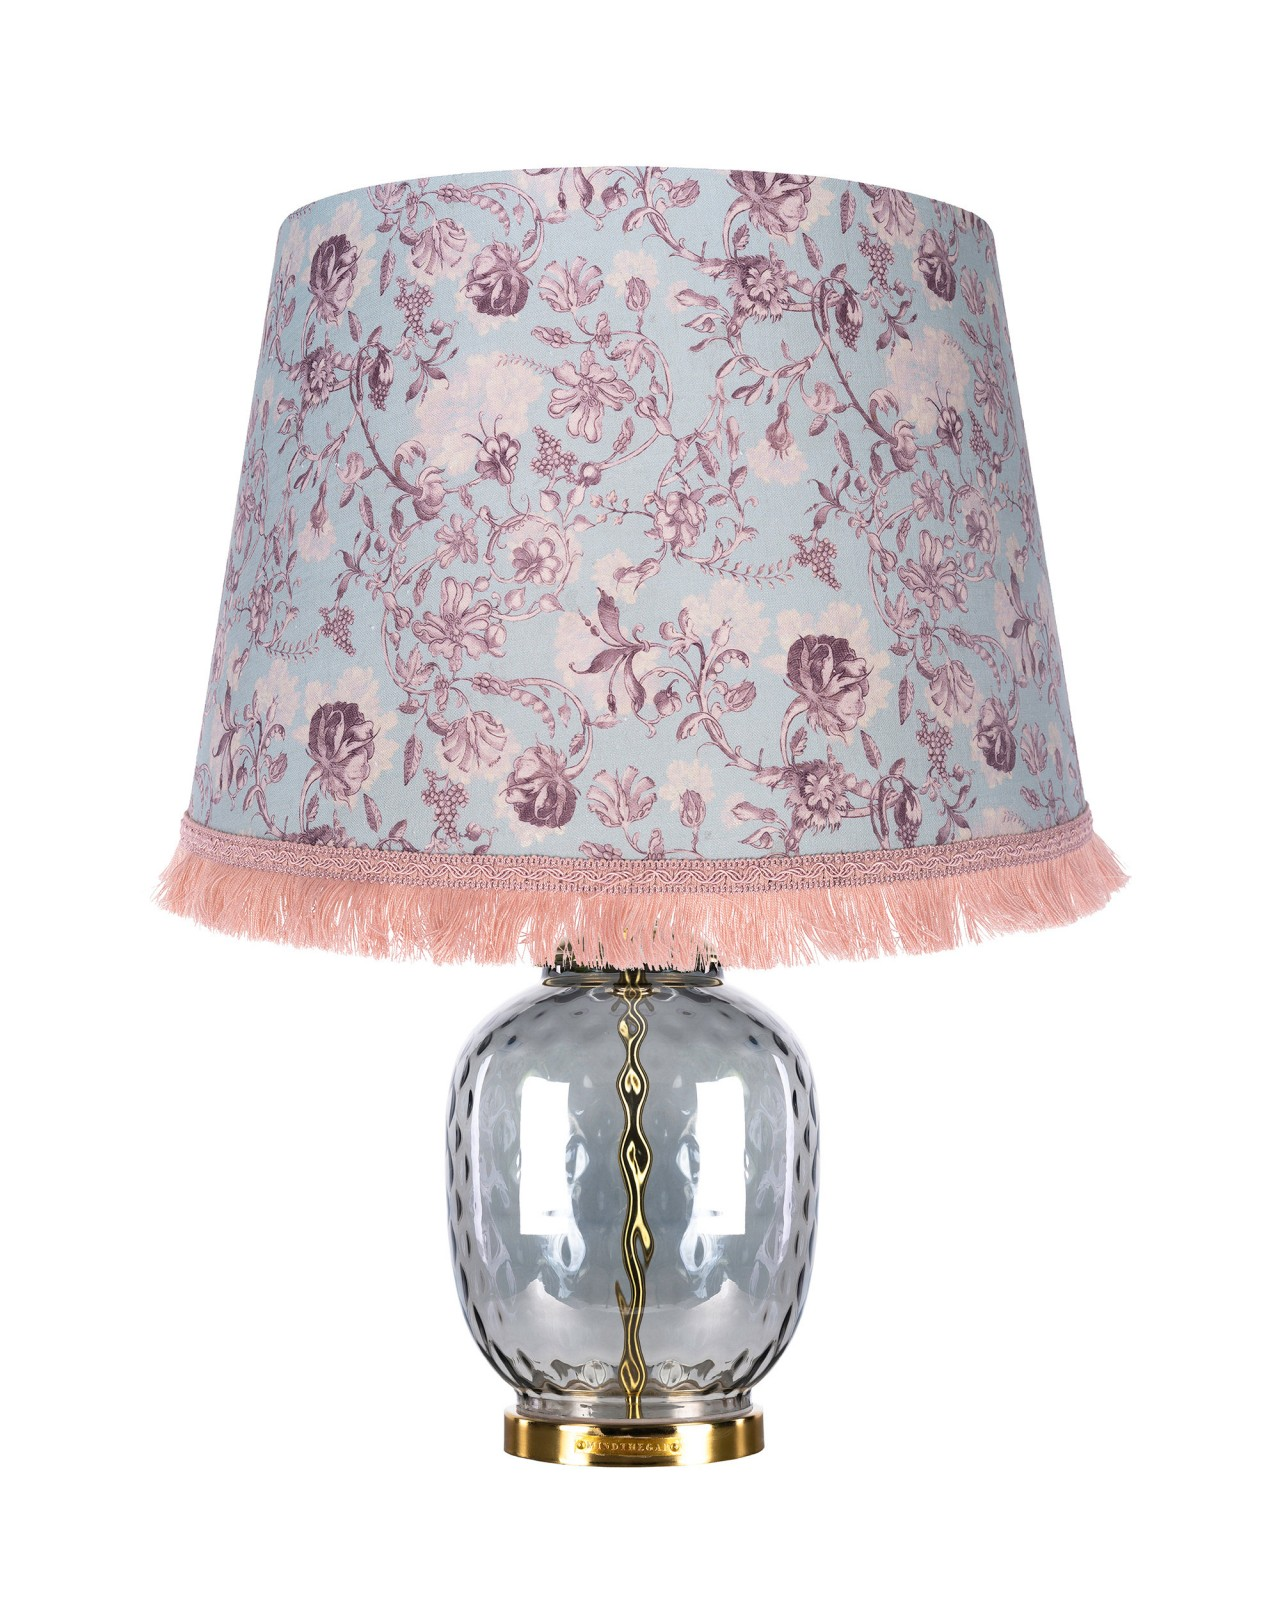 BOHEMIAN CHELSEA Table Lamp